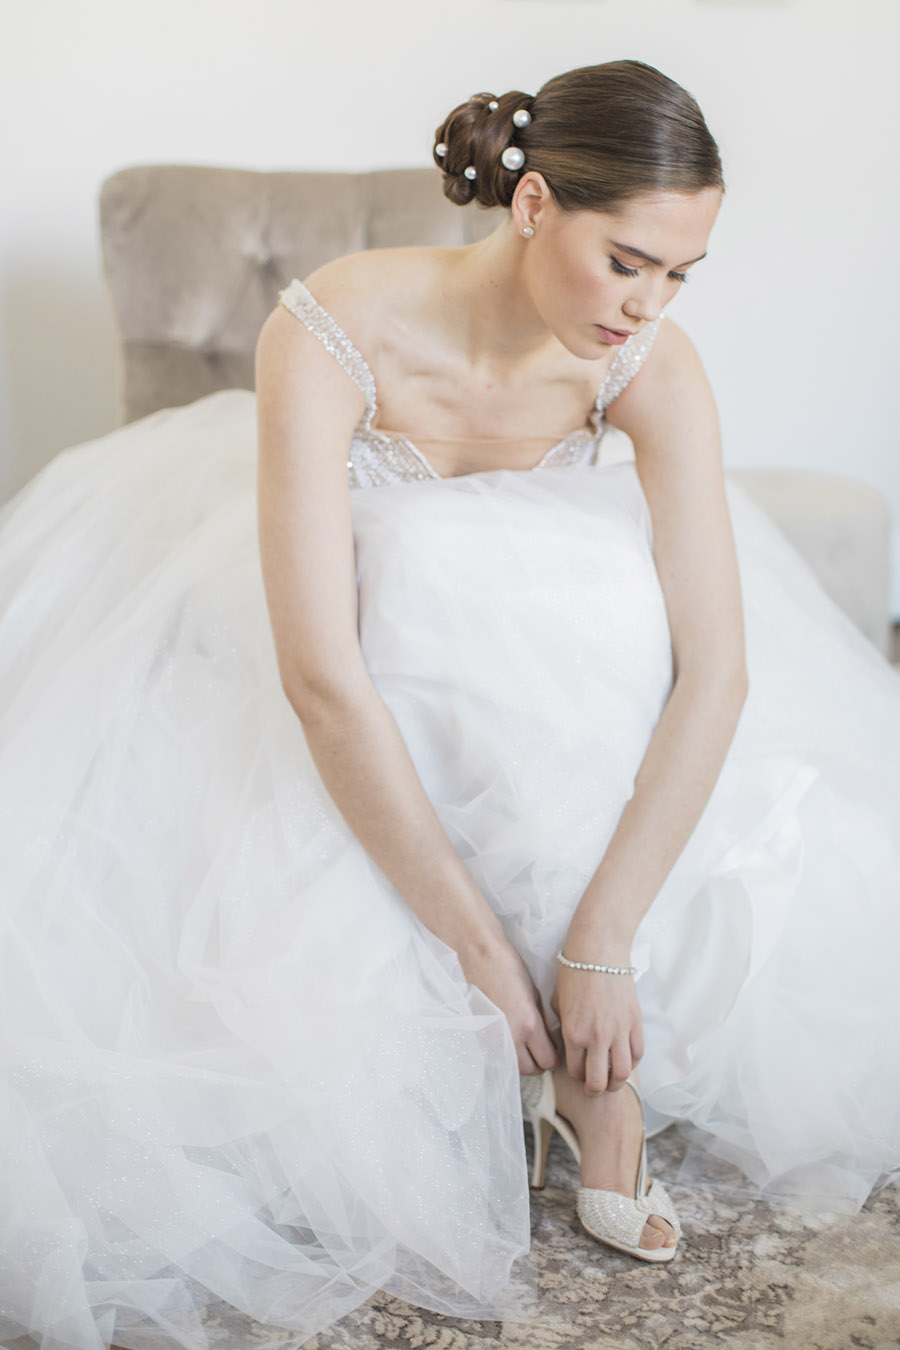 for bridesmaids everywhere, with love. Image credit Natalie D Photography (16)